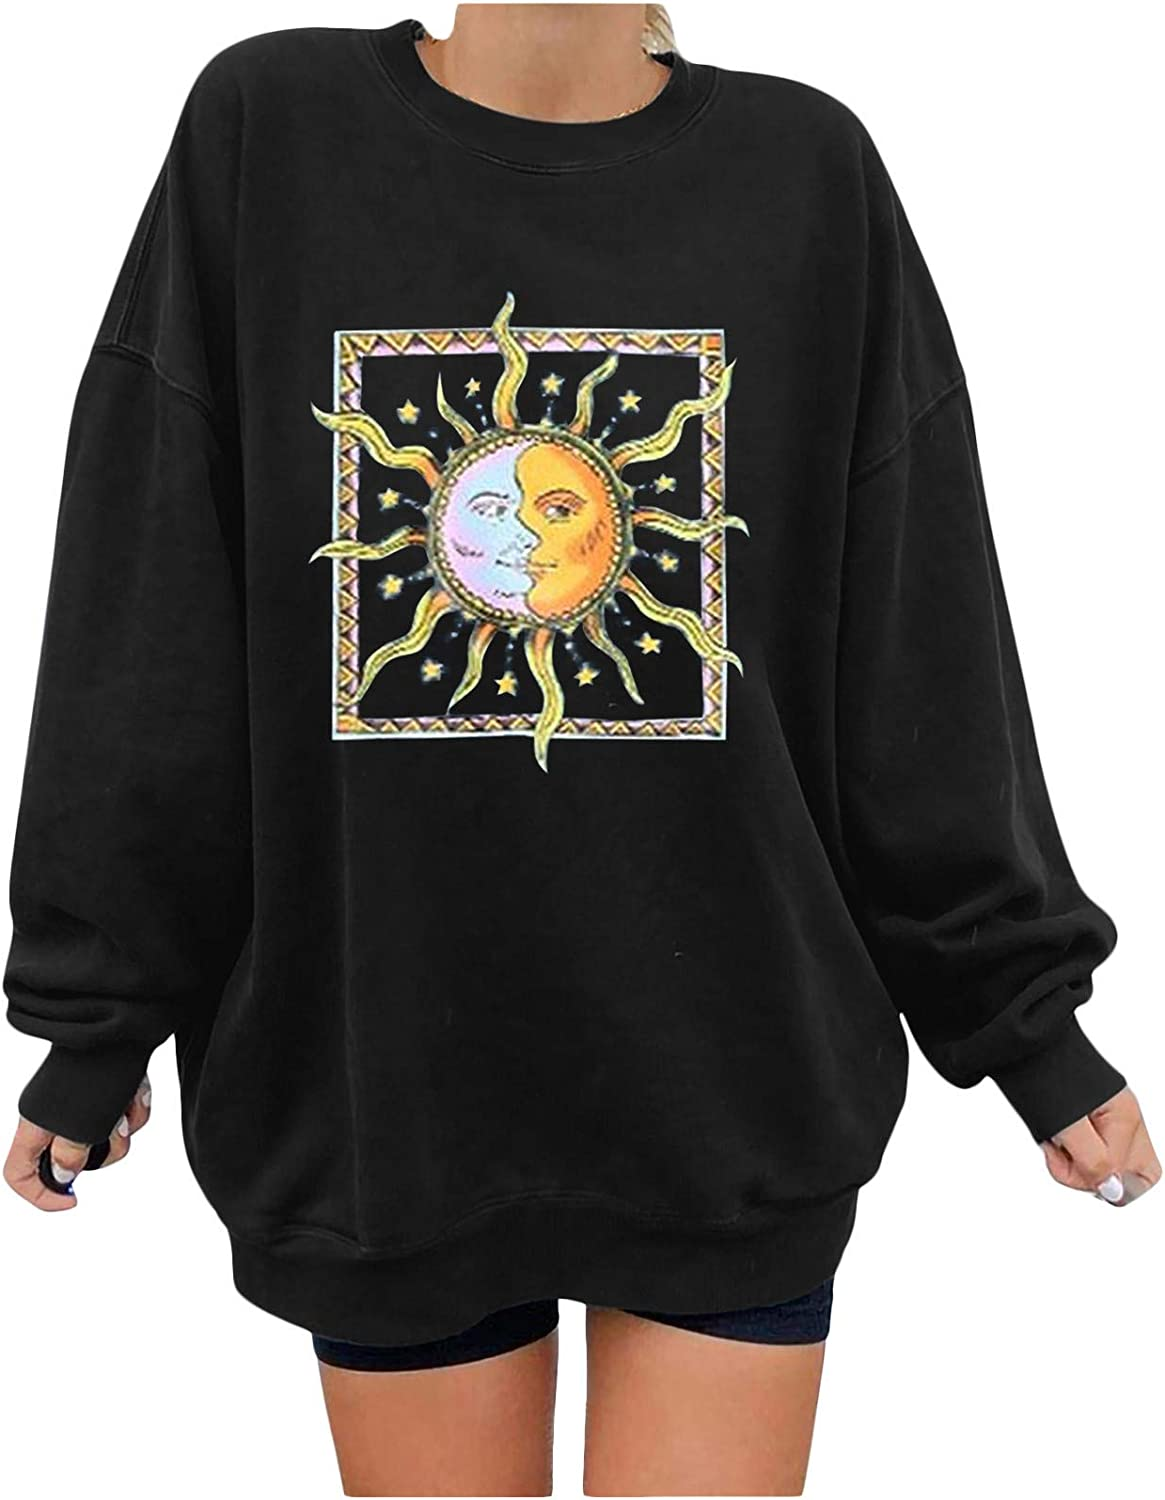 MASZONE Crewneck Sweatshirts for Women Graphic Sun and Moon Print Crewneck Pullover Plus Size Long Sleeve Blouses Tops